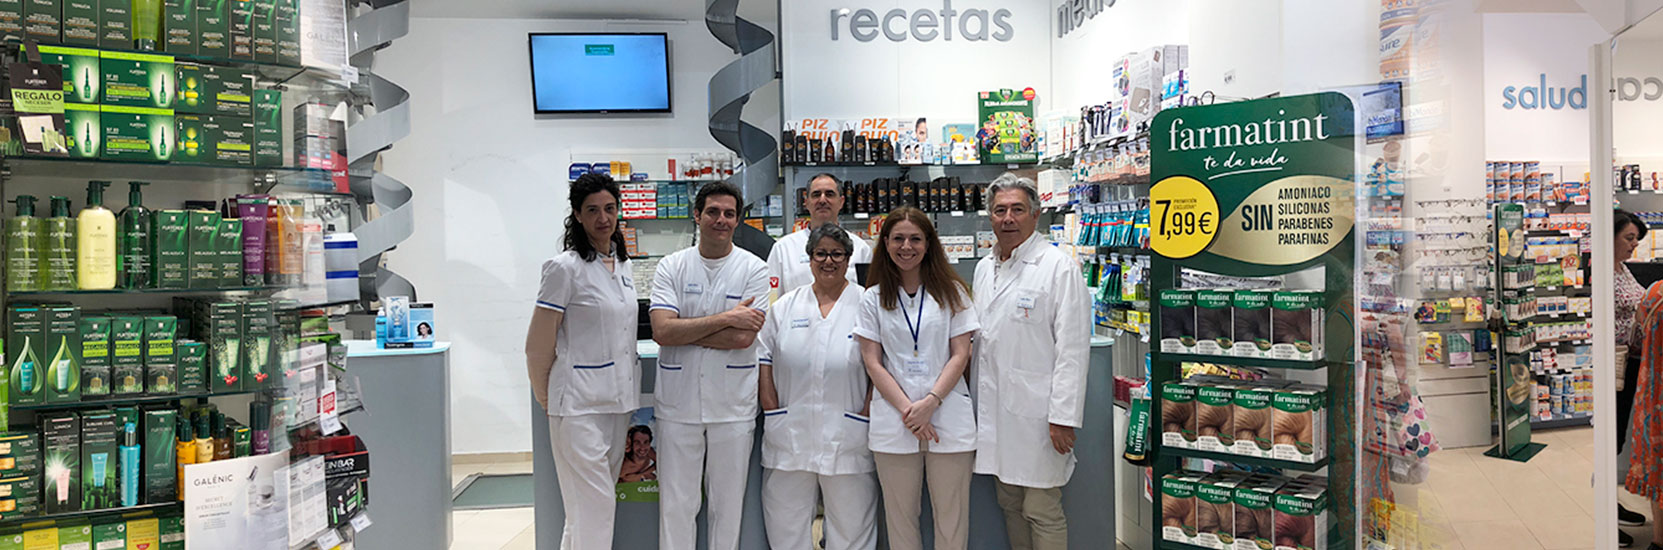 Farmacia plaza del sol slider 2